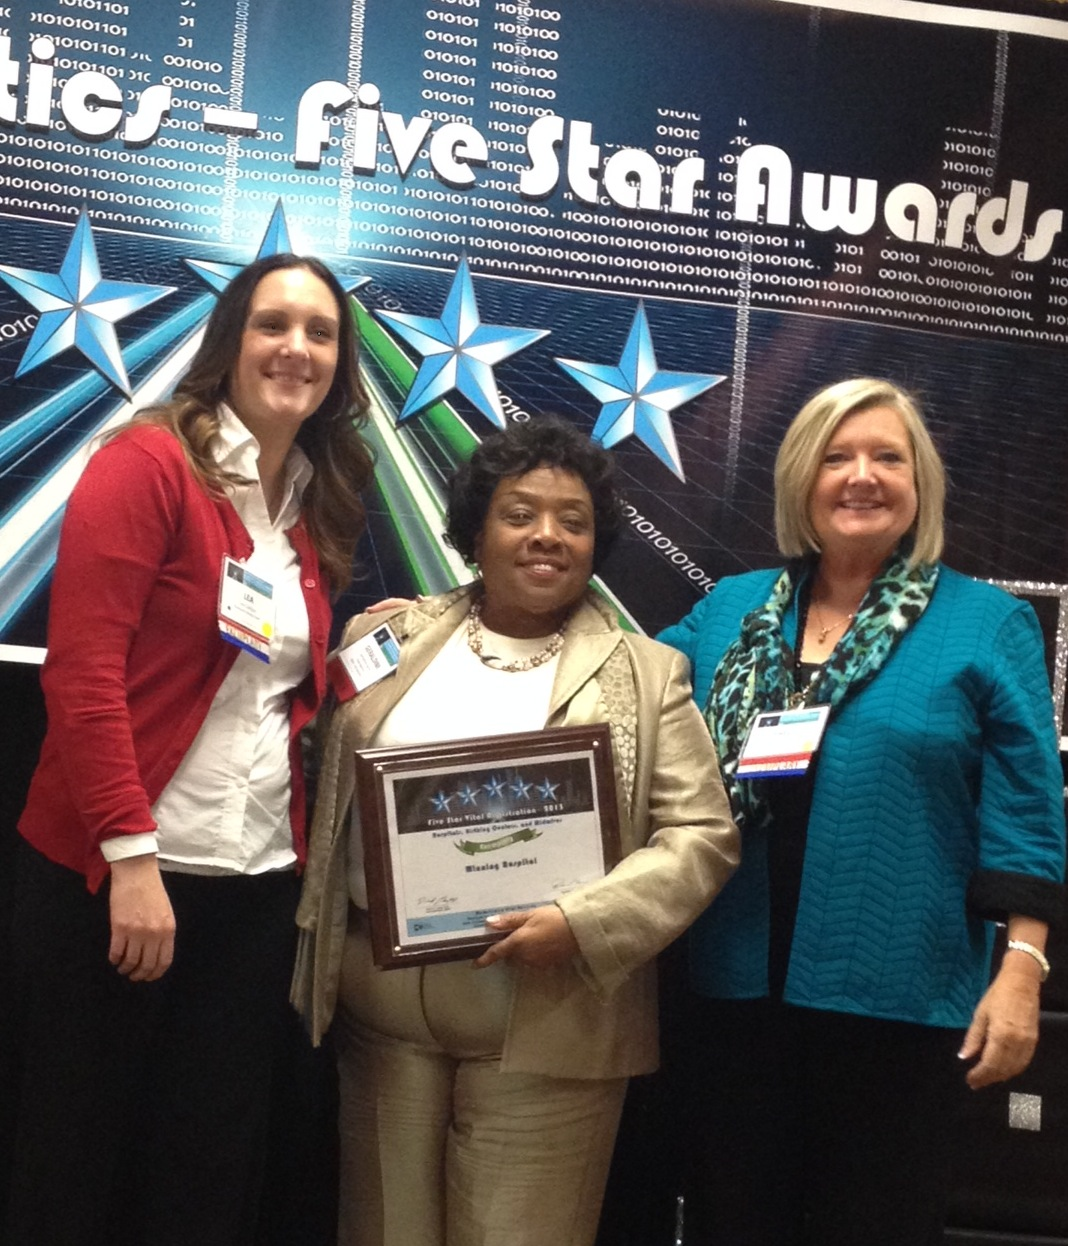 Rockwall County Clerk honored with Five Star Exemplary Award